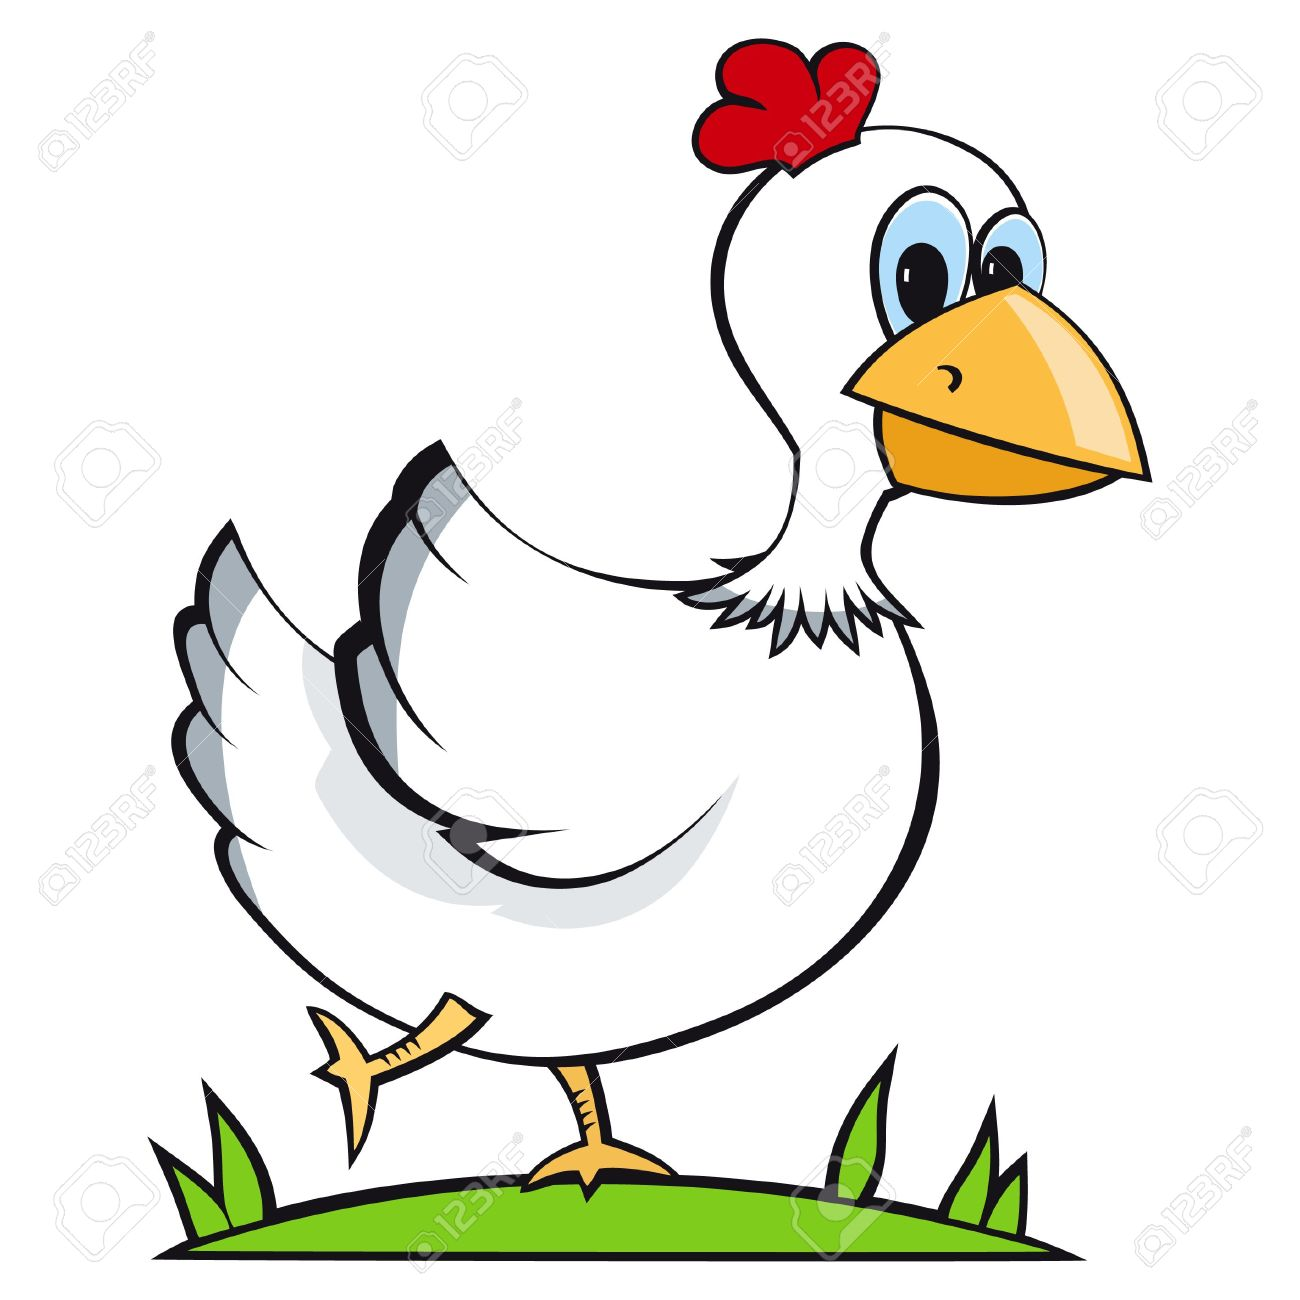 free clipart of cartoon chickens - photo #35